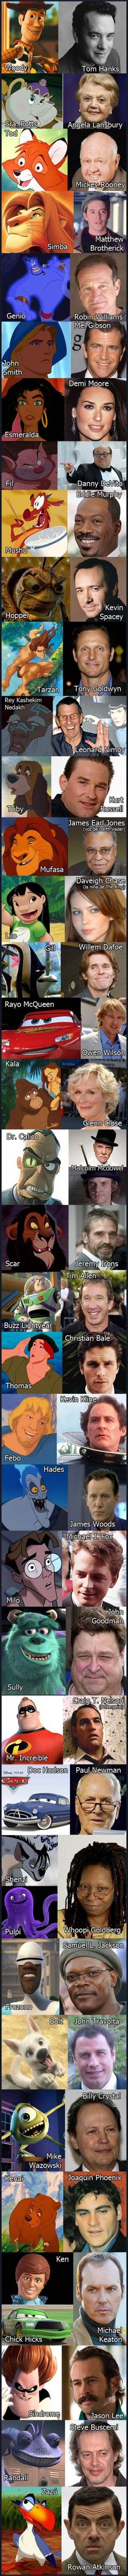 Characters and their counterparts. I didn't know some of these actors/actresses voiced in those Disney movies!